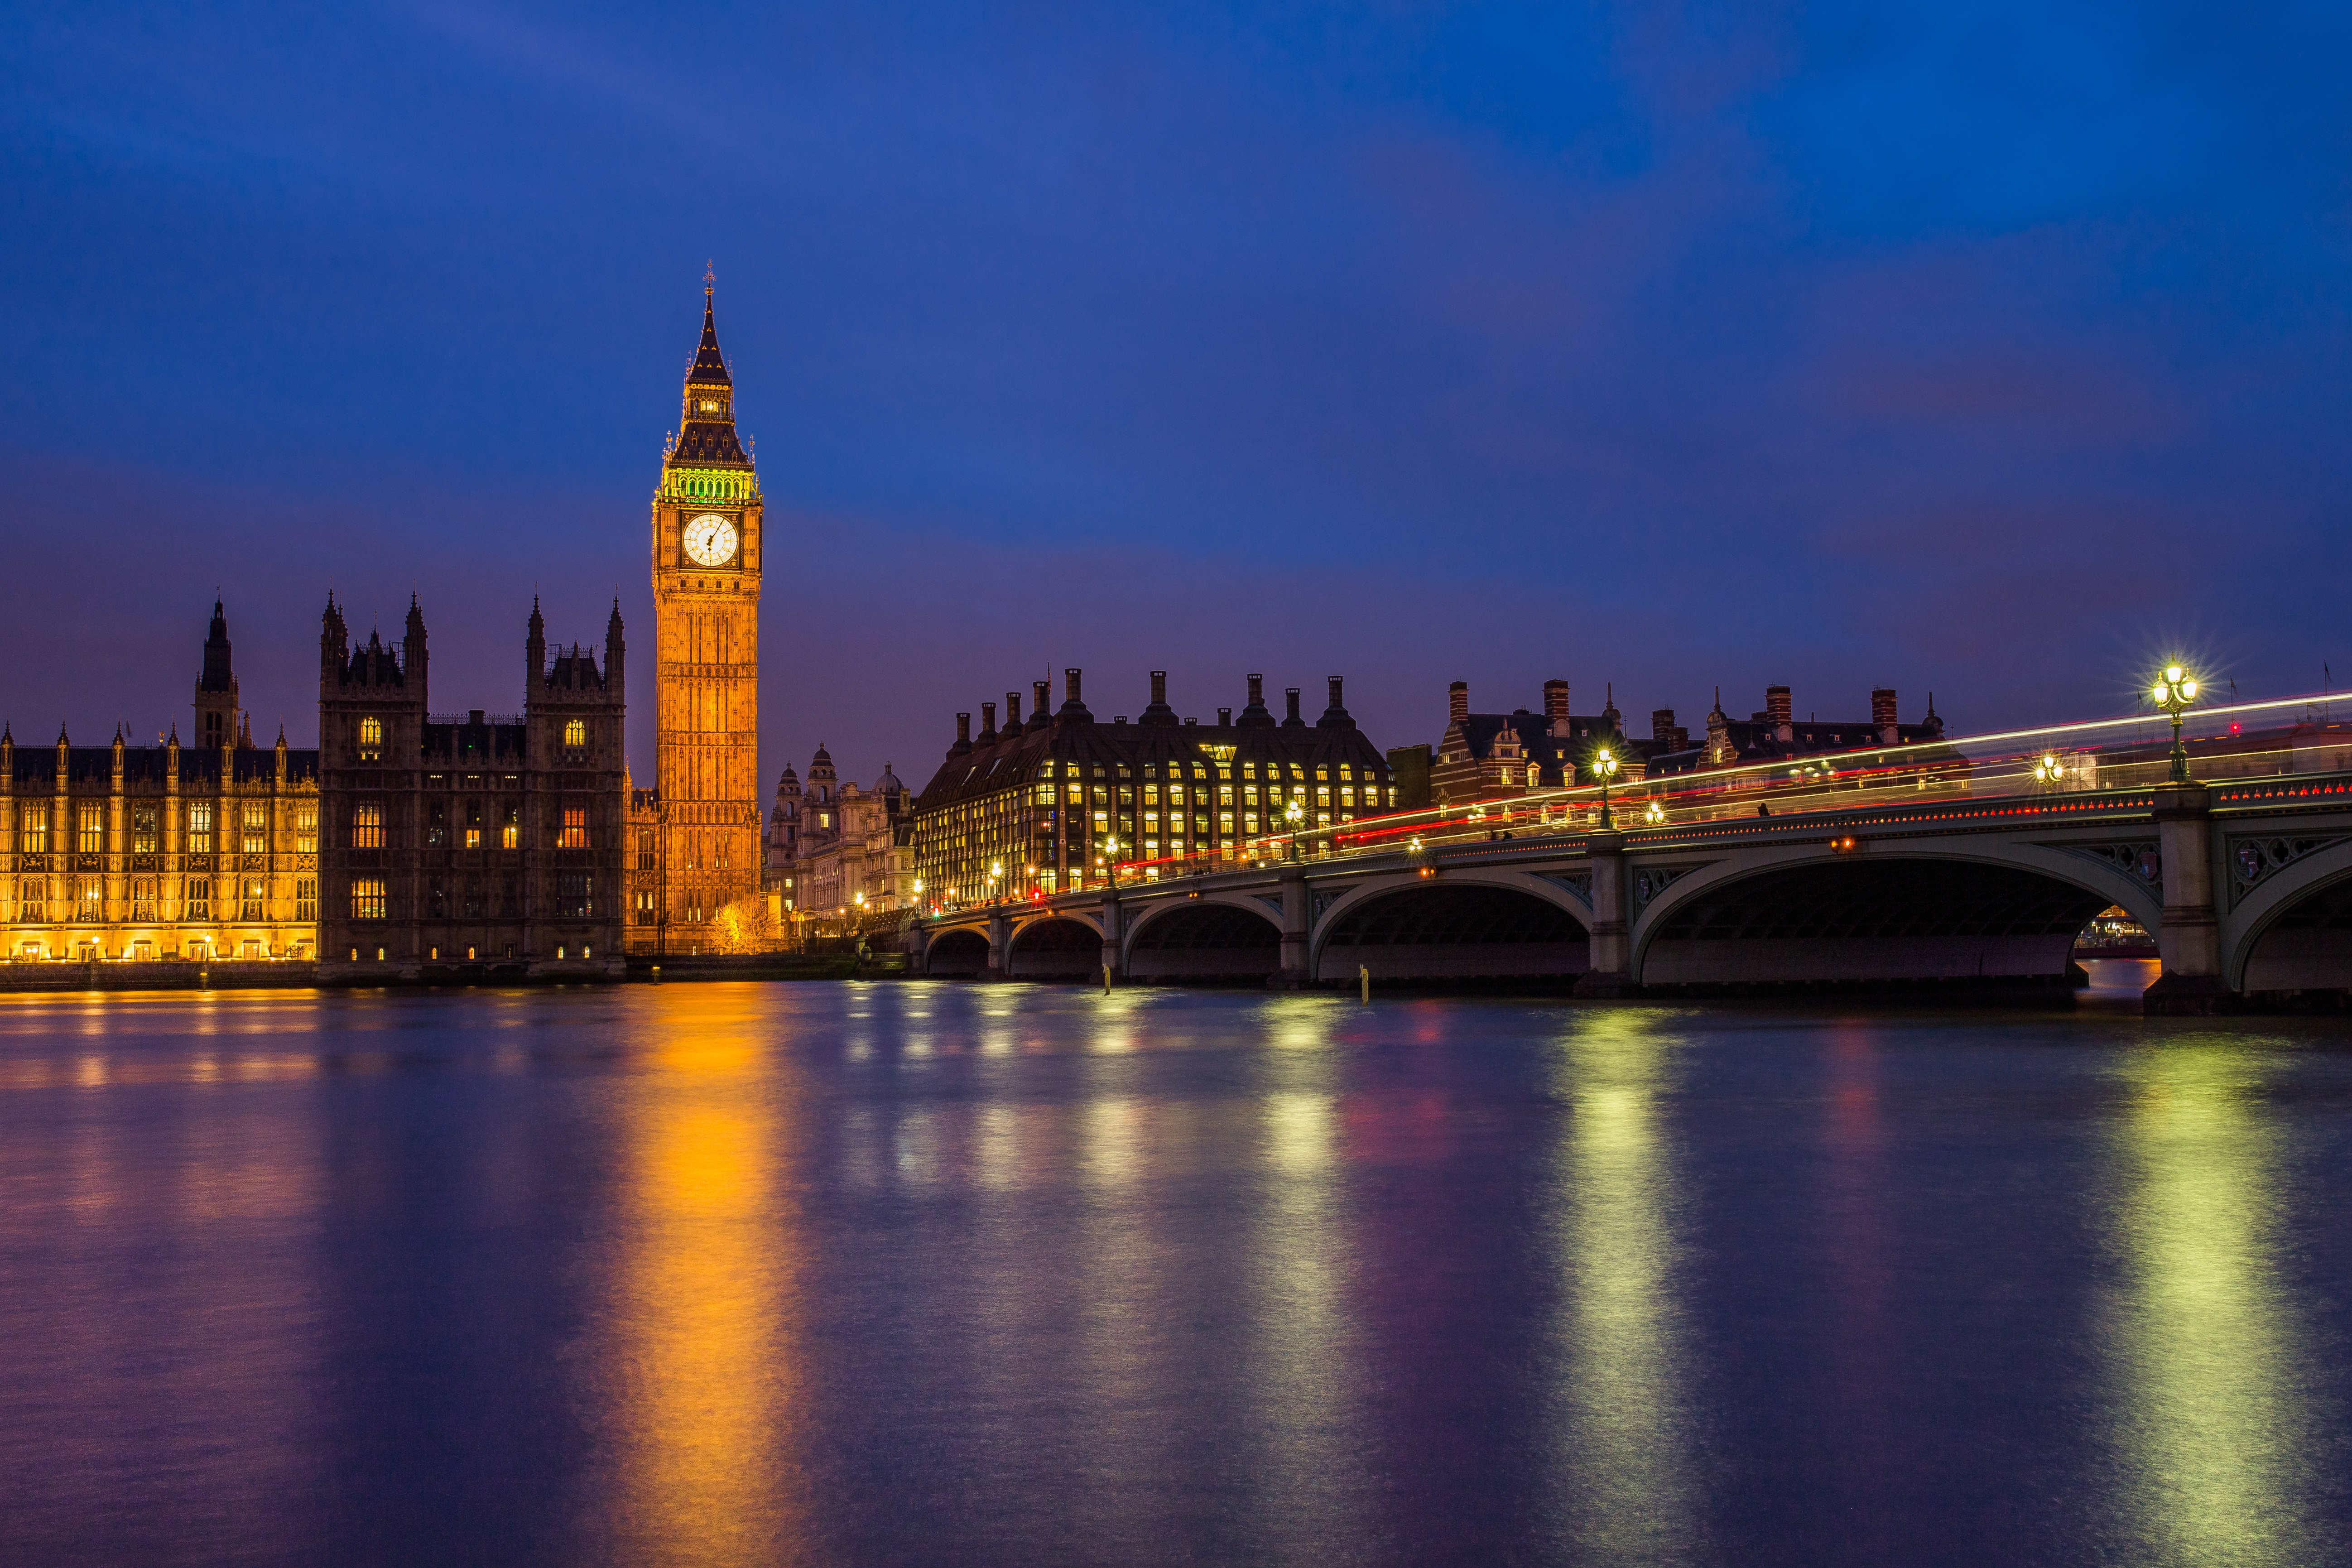 Full Hd Wallpapers 1080p Desktop Free Download London Tower London At Night Free Stock Photo Negativespace